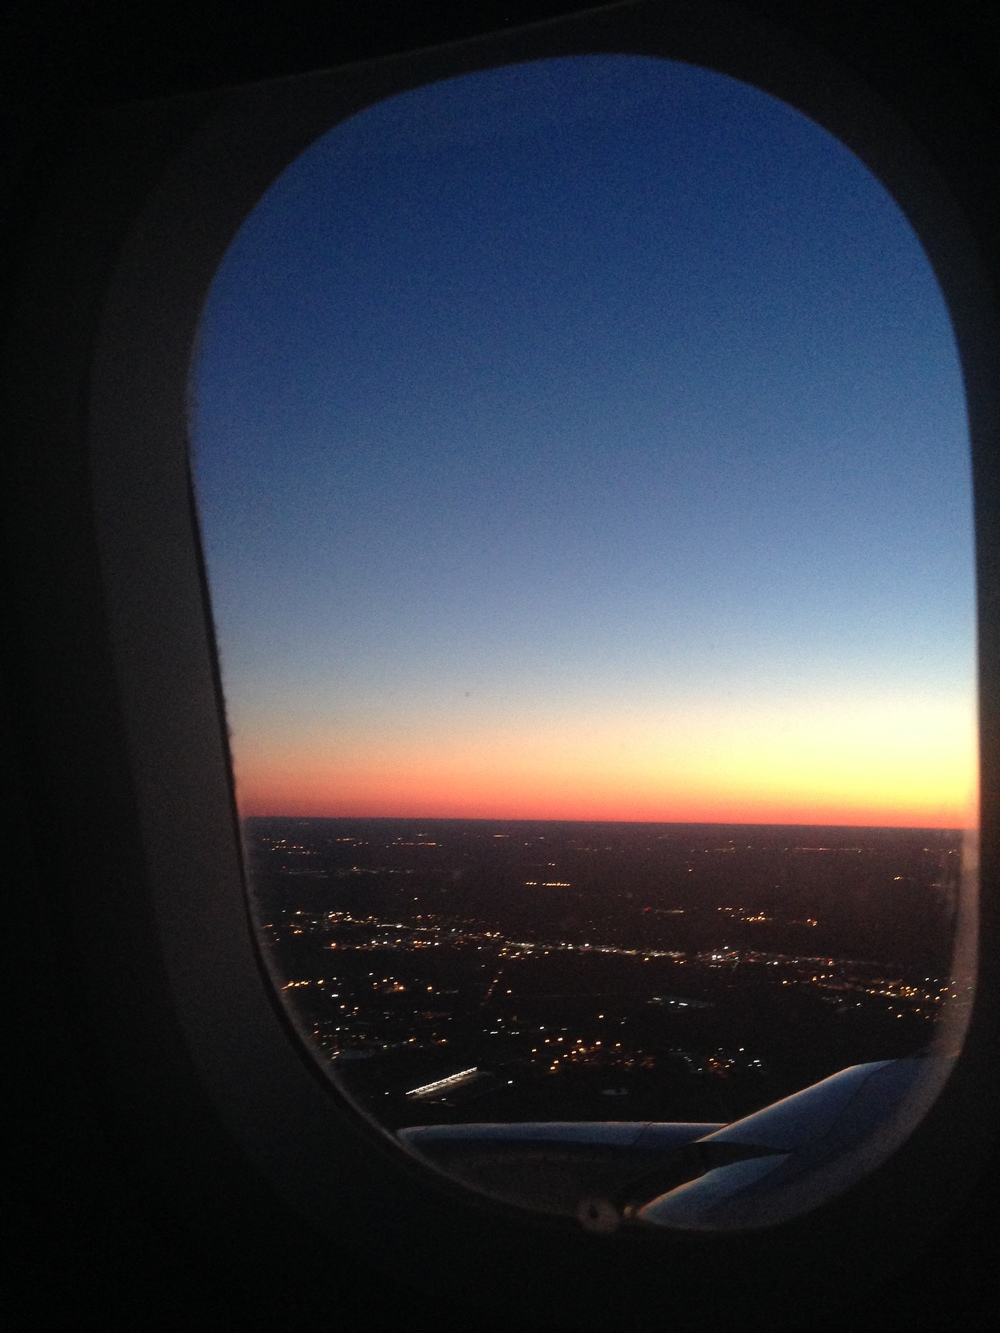 Sunrise as we flew into Charlotte for our layover. The time zone change was brutal.